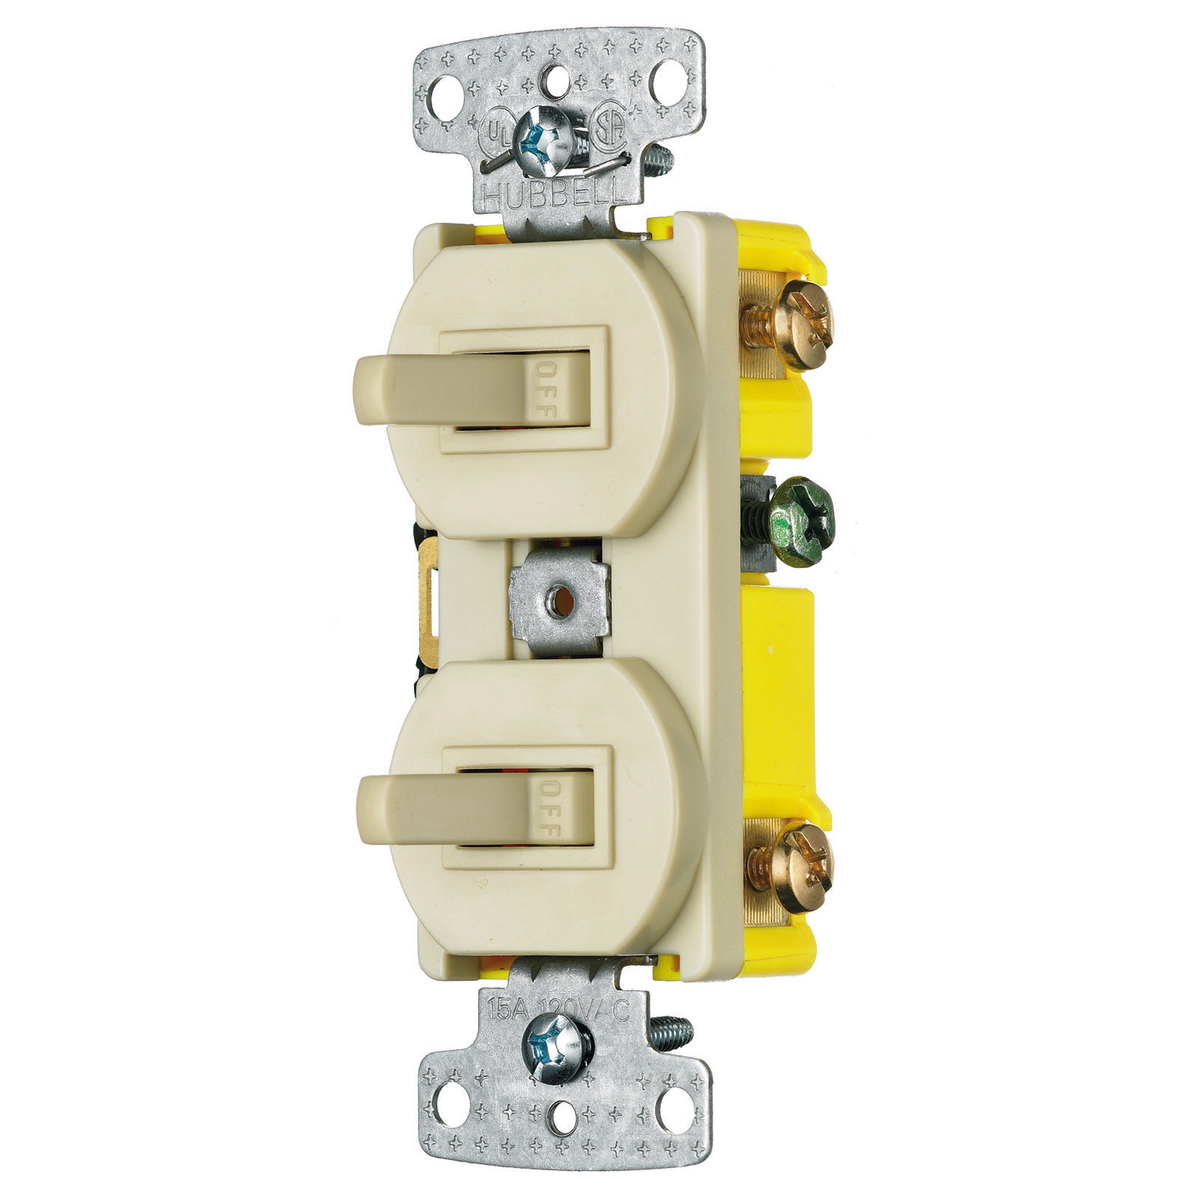 Hubbell RC101I Combination Toggle Switch, (2) 15A 120V Toggles - Ivory